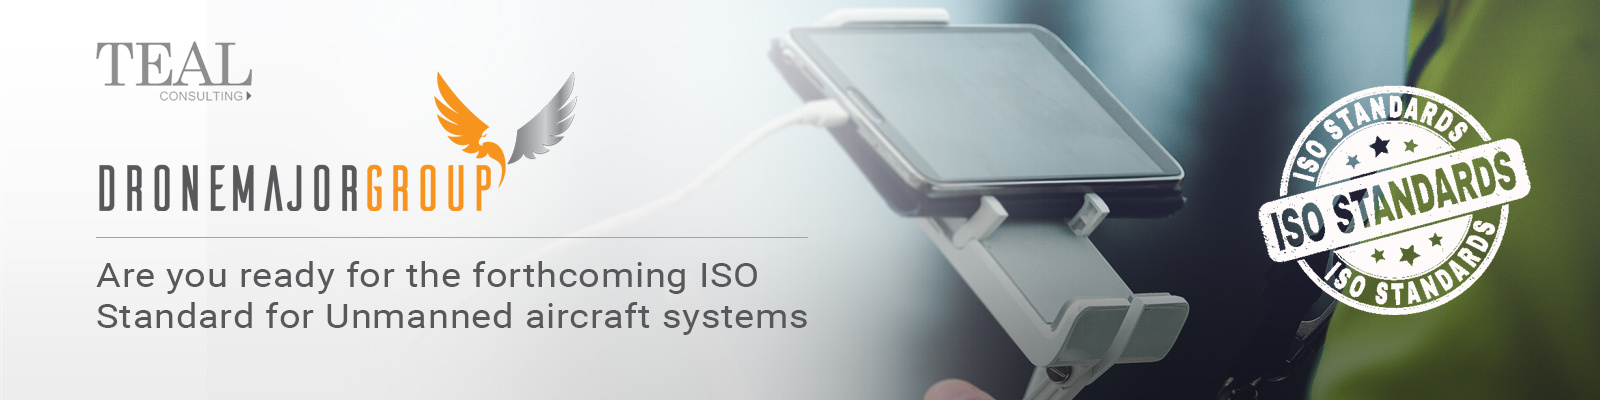 Are you ready for the forthcoming ISO Standard for Unmanned aircraft systems —Operational procedures